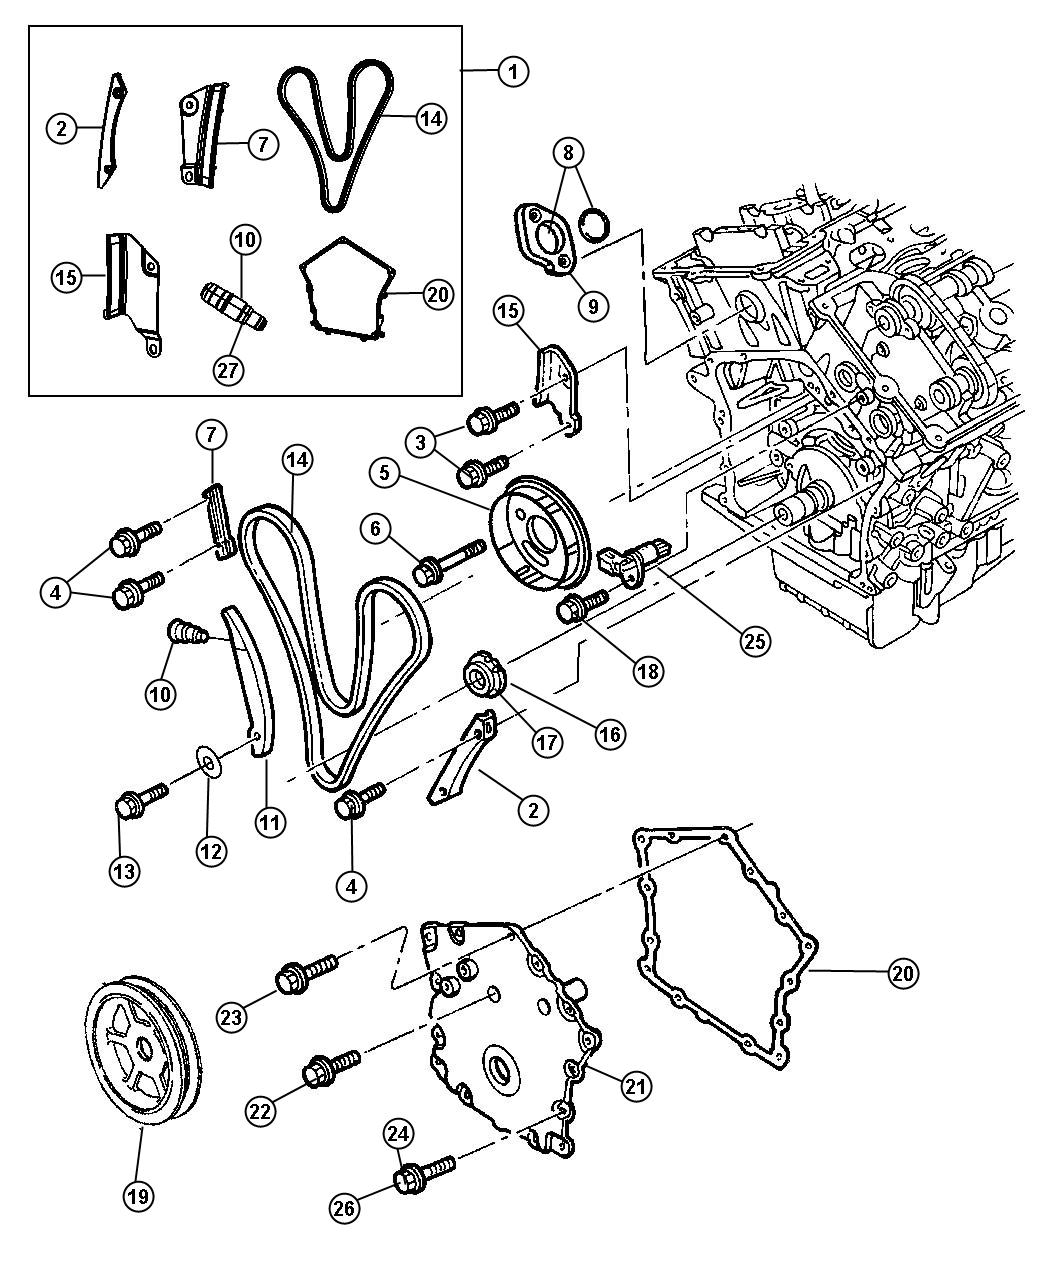 2007 Chrysler Sebring Timing Chain Package, Timing Covers